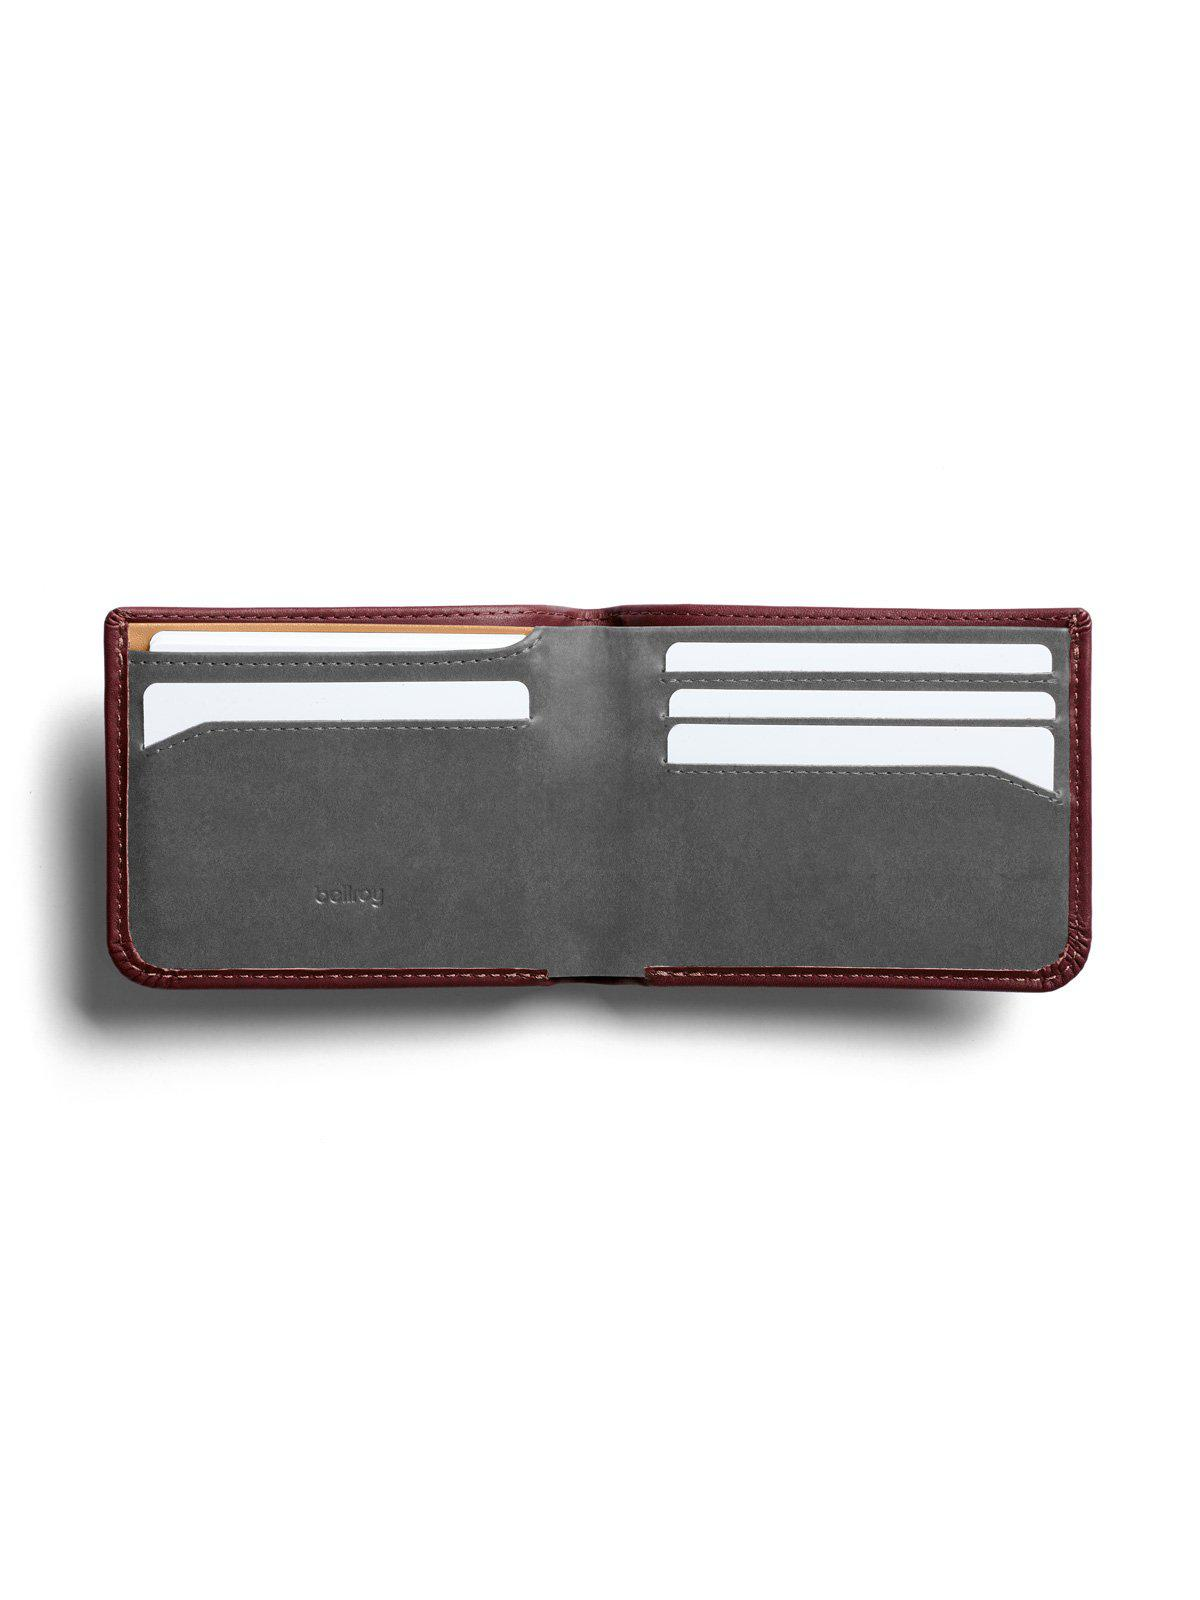 Bellroy Hide and Seek Wallet Wine RFID - MORE by Morello Indonesia